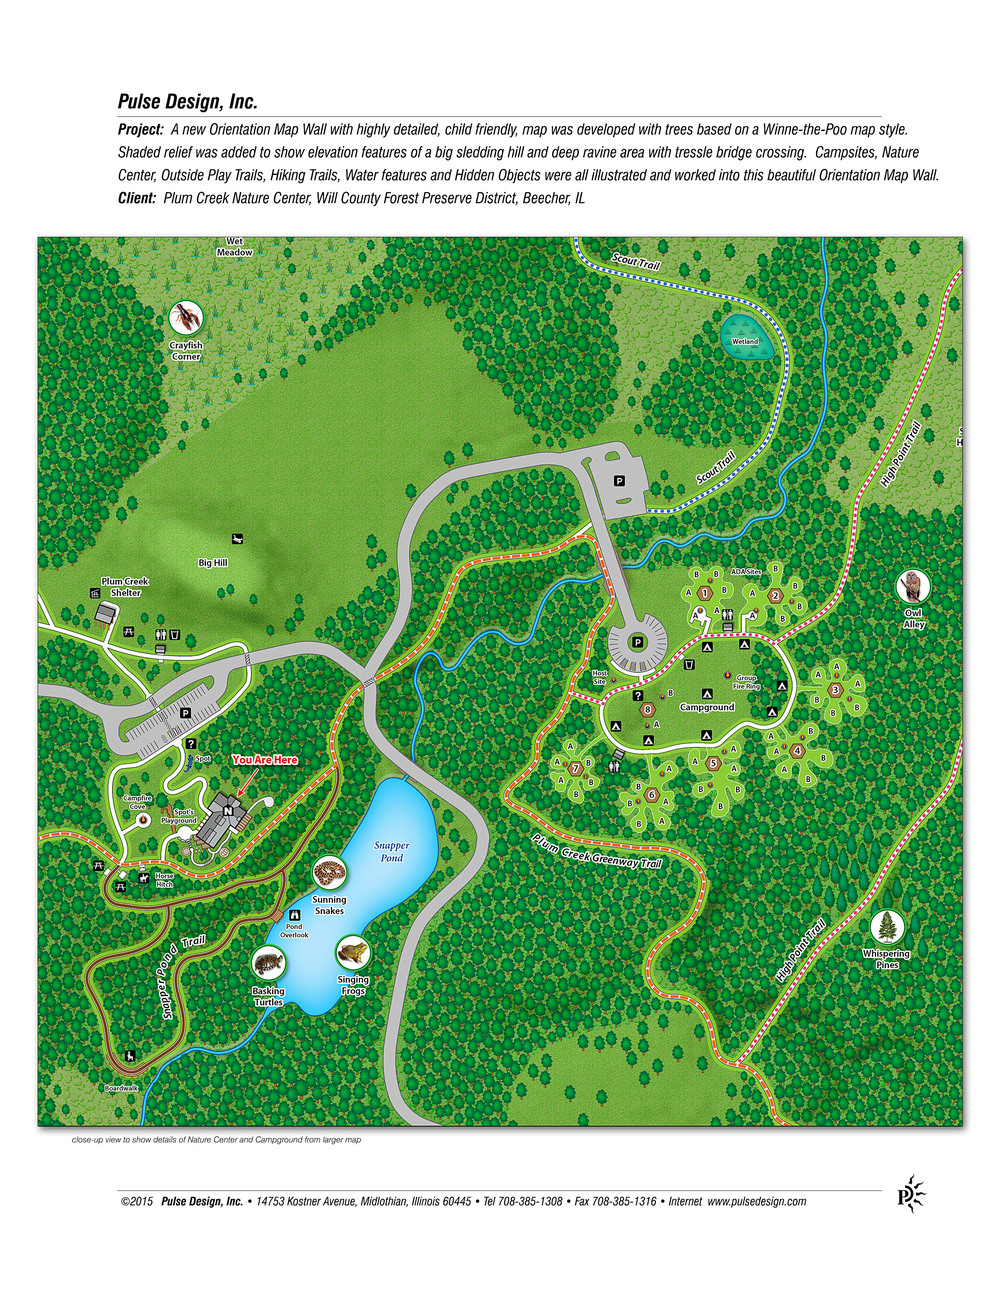 Plum-Creek-Inside-Map-Campground-Detail-Pulse-Design-Inc.jpg